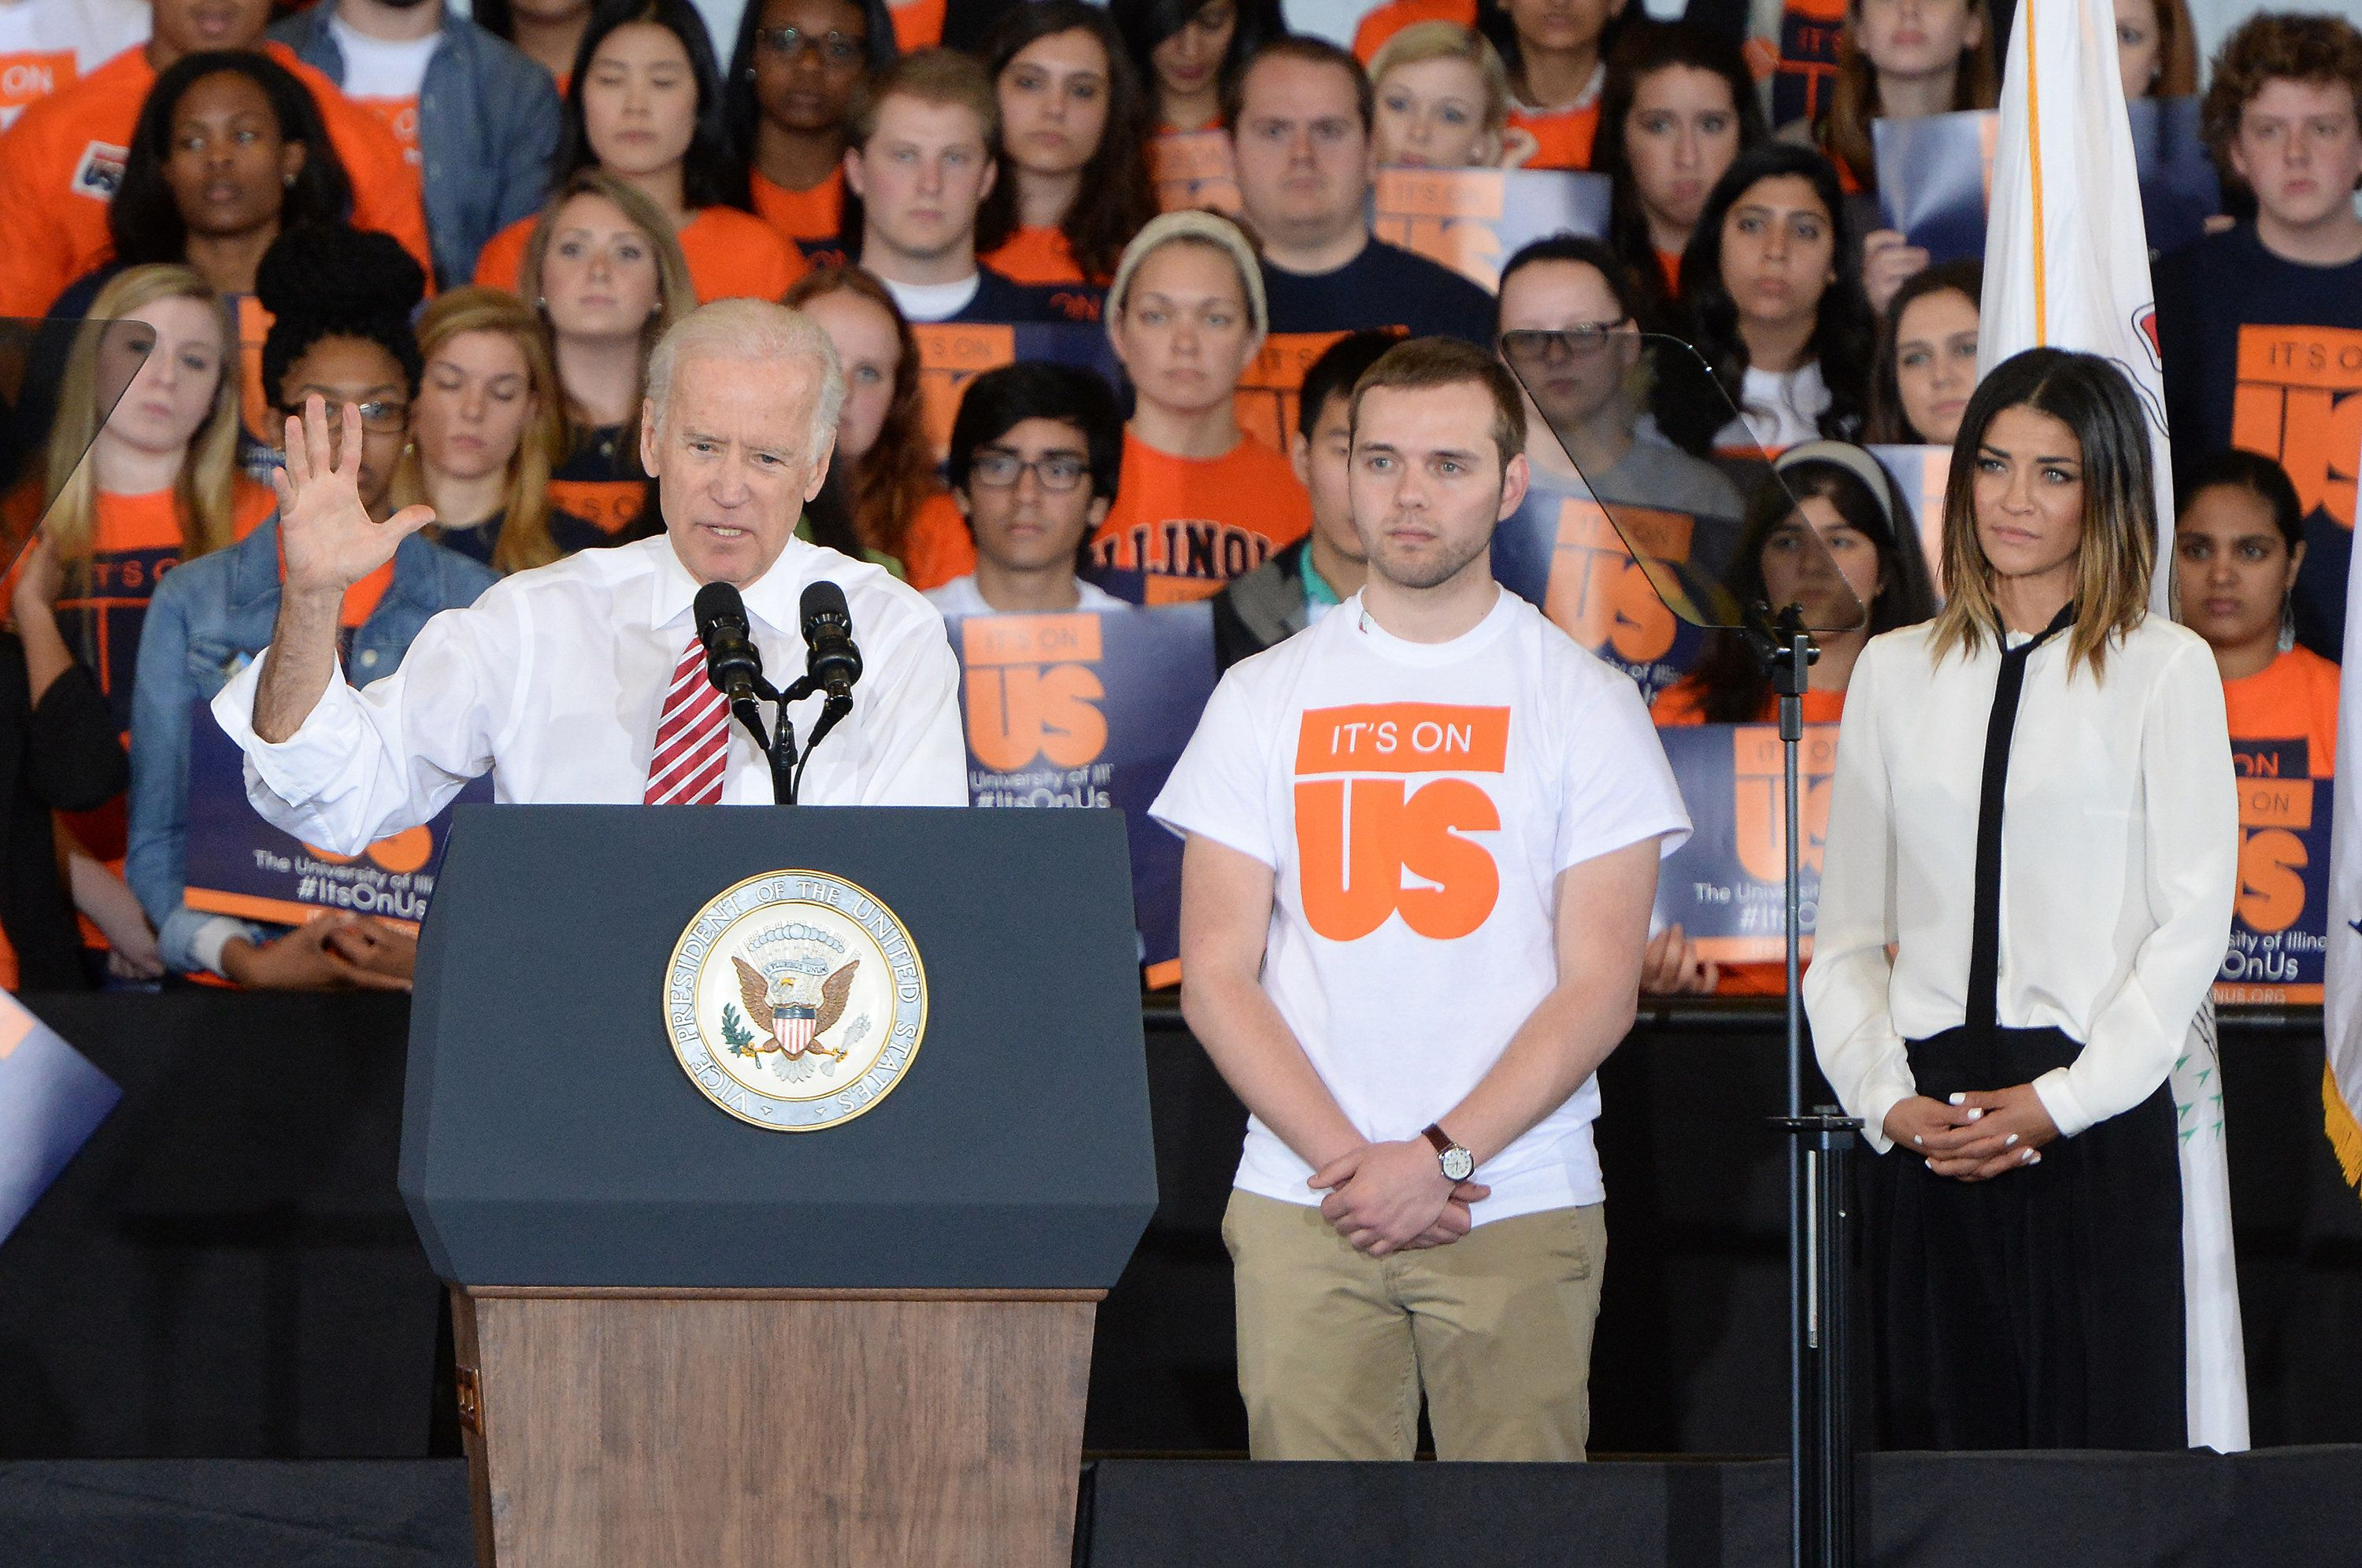 USA Network Events -- 'Vice President Joe Biden and Jessica Szhor, star of USA's 'Complications' address the students of the University of Illinois, Champaign-Urbana in support of the 'It's On Us' campaign to raise awareness and encourage action to stop sexual assault and domestic violence' -- Pictured: (l-r) Joe Biden, Mitch Dickey, Jessica Szhor 'Complications' -- (Photo by: Daniel Boczarski/USA Network/NBCU Photo Bank via Getty Images)